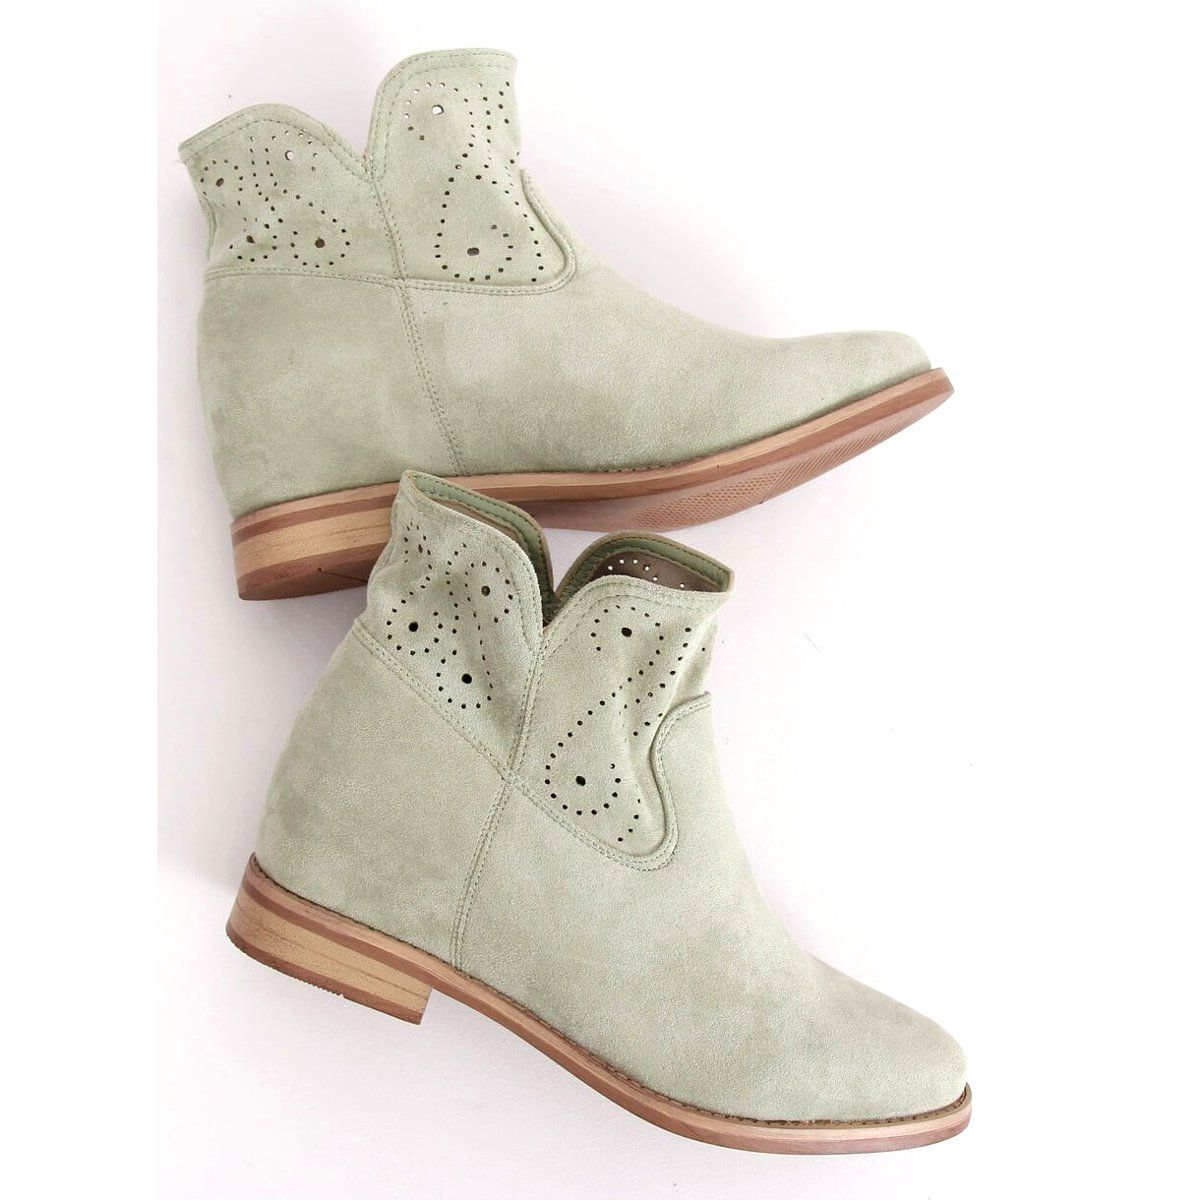 Botki Azurowe Seledynowe Nc1000 Green Zielone Boots Ankle Boot Shoes